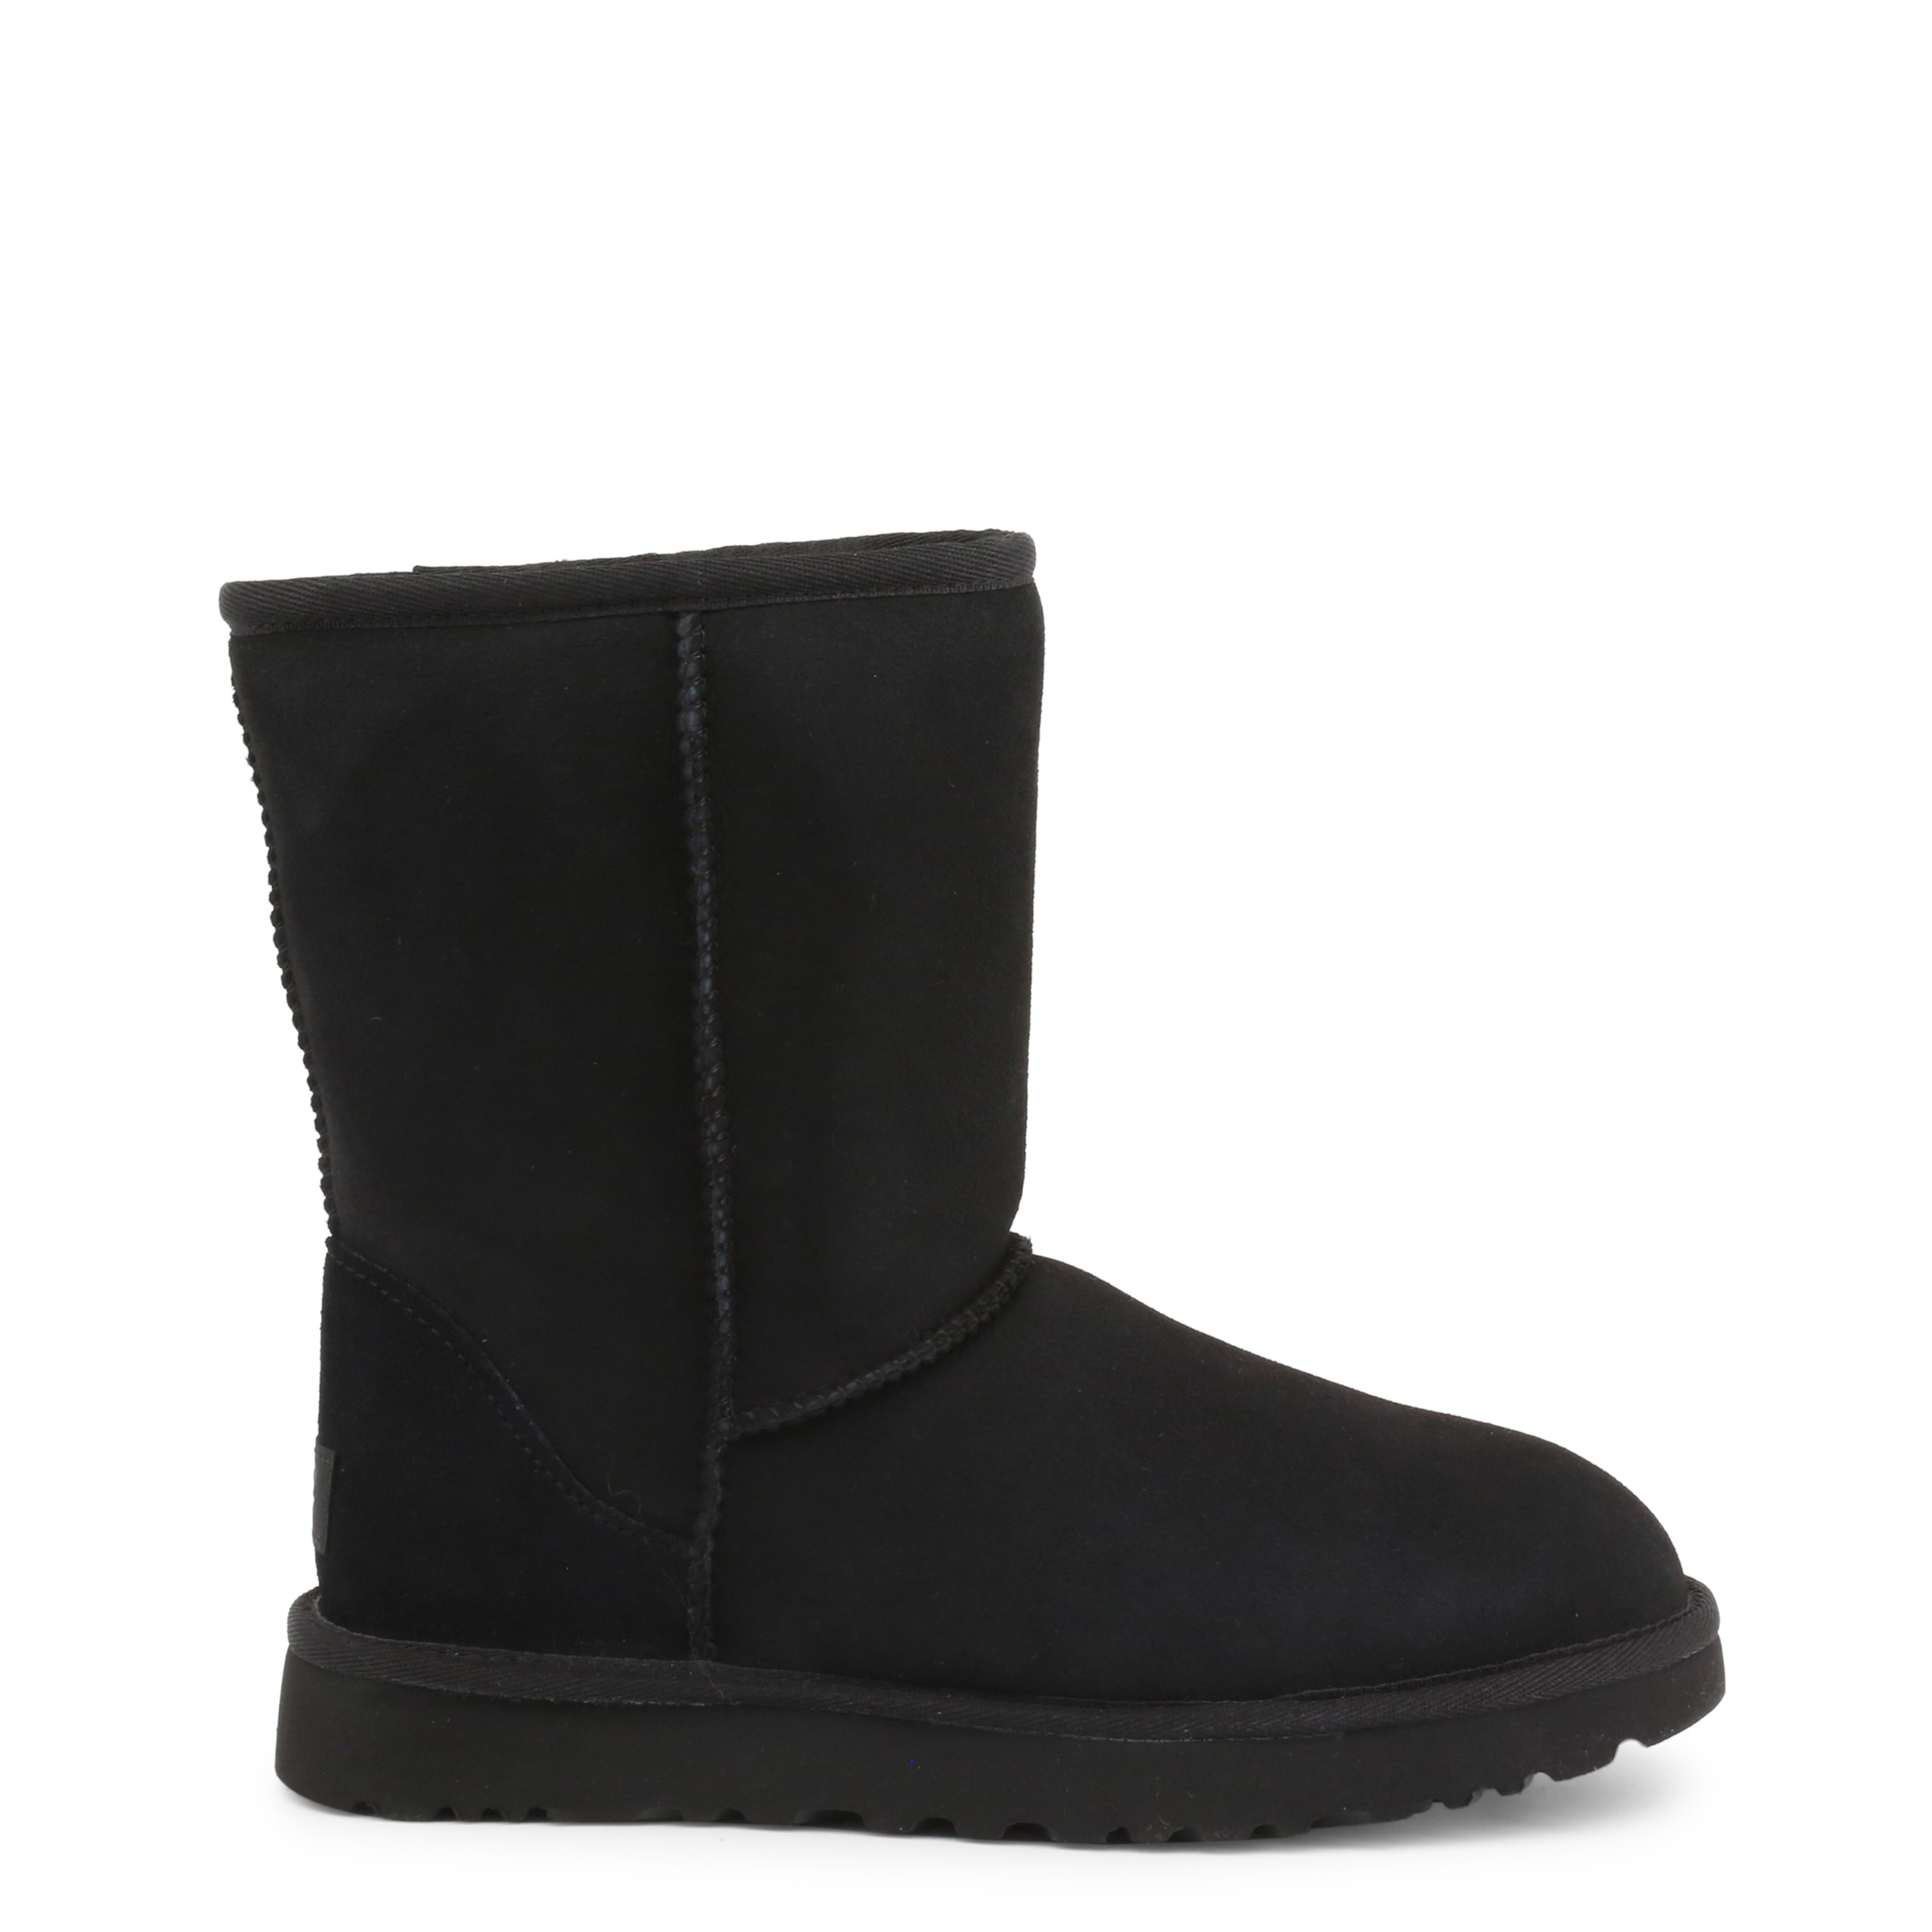 Ugg Women's Ankle Boots In Black EU 41